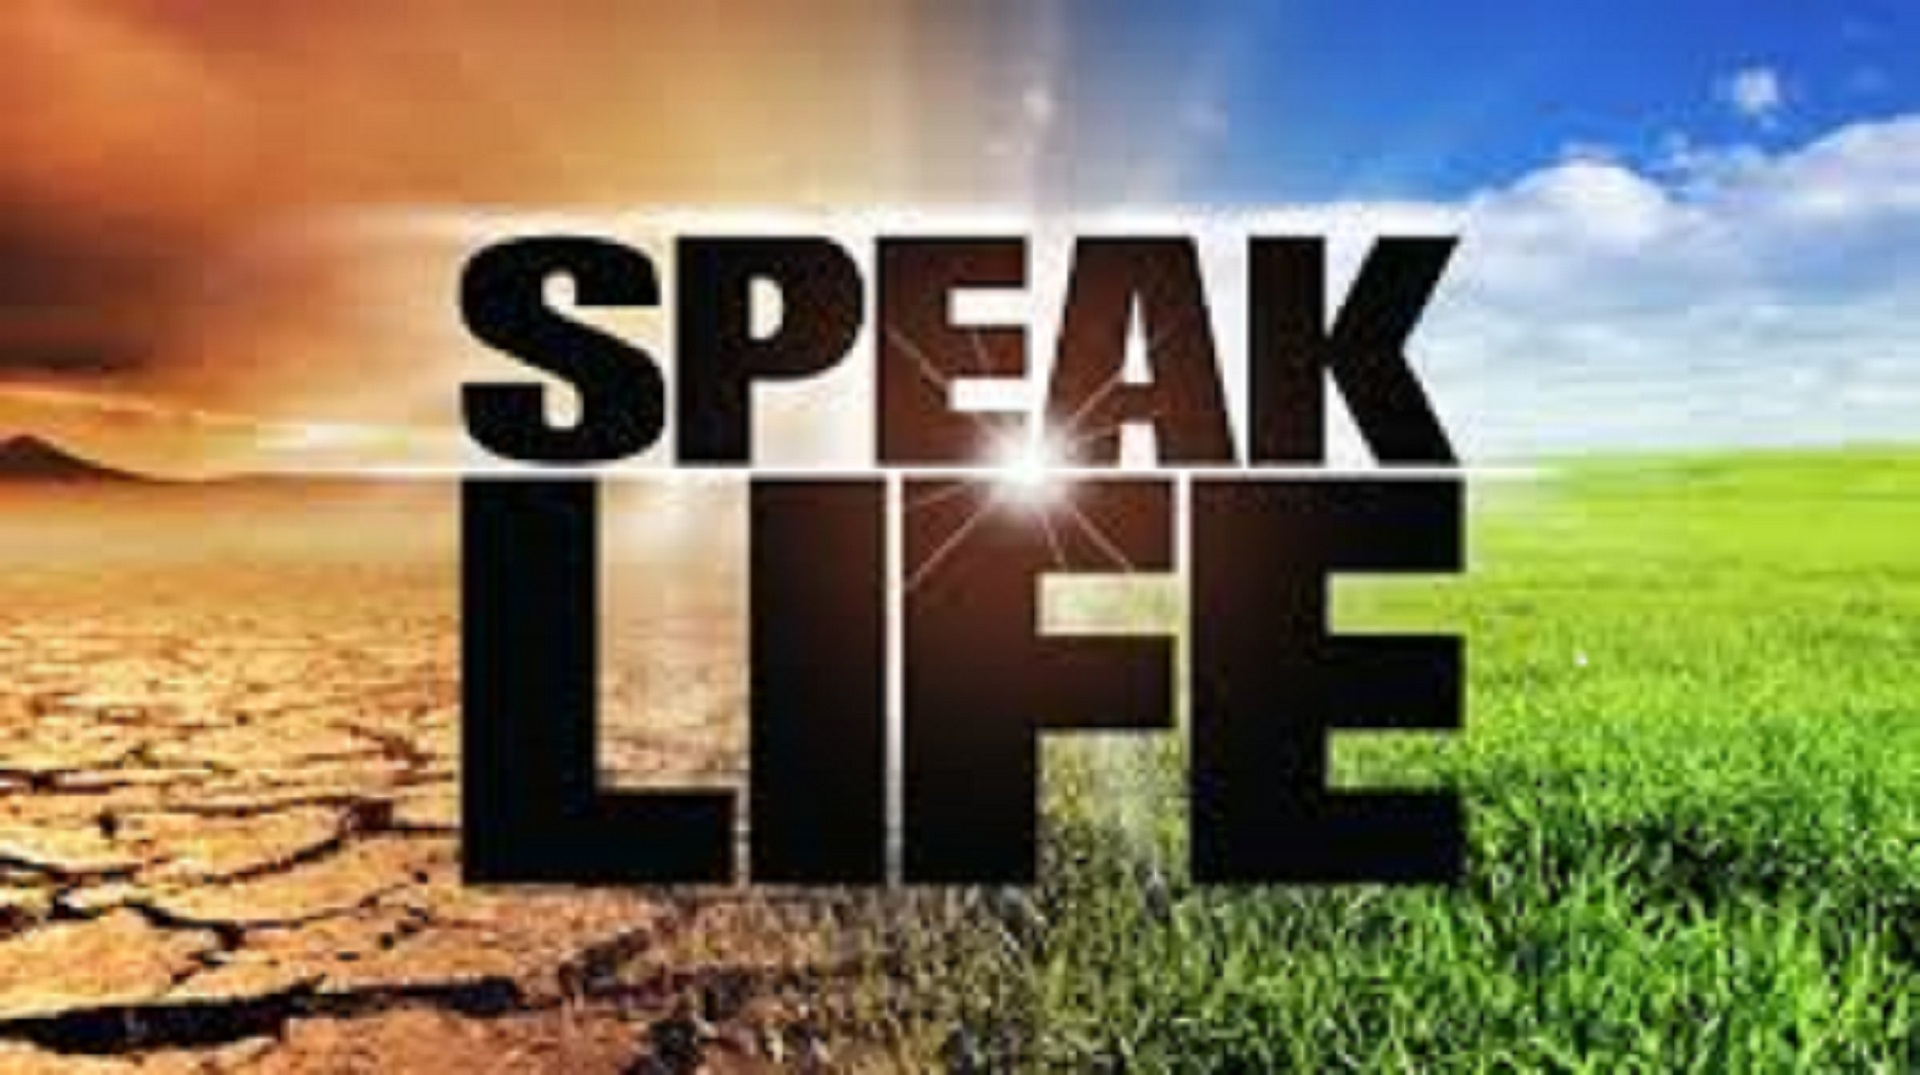 Speak Life Global Ministries